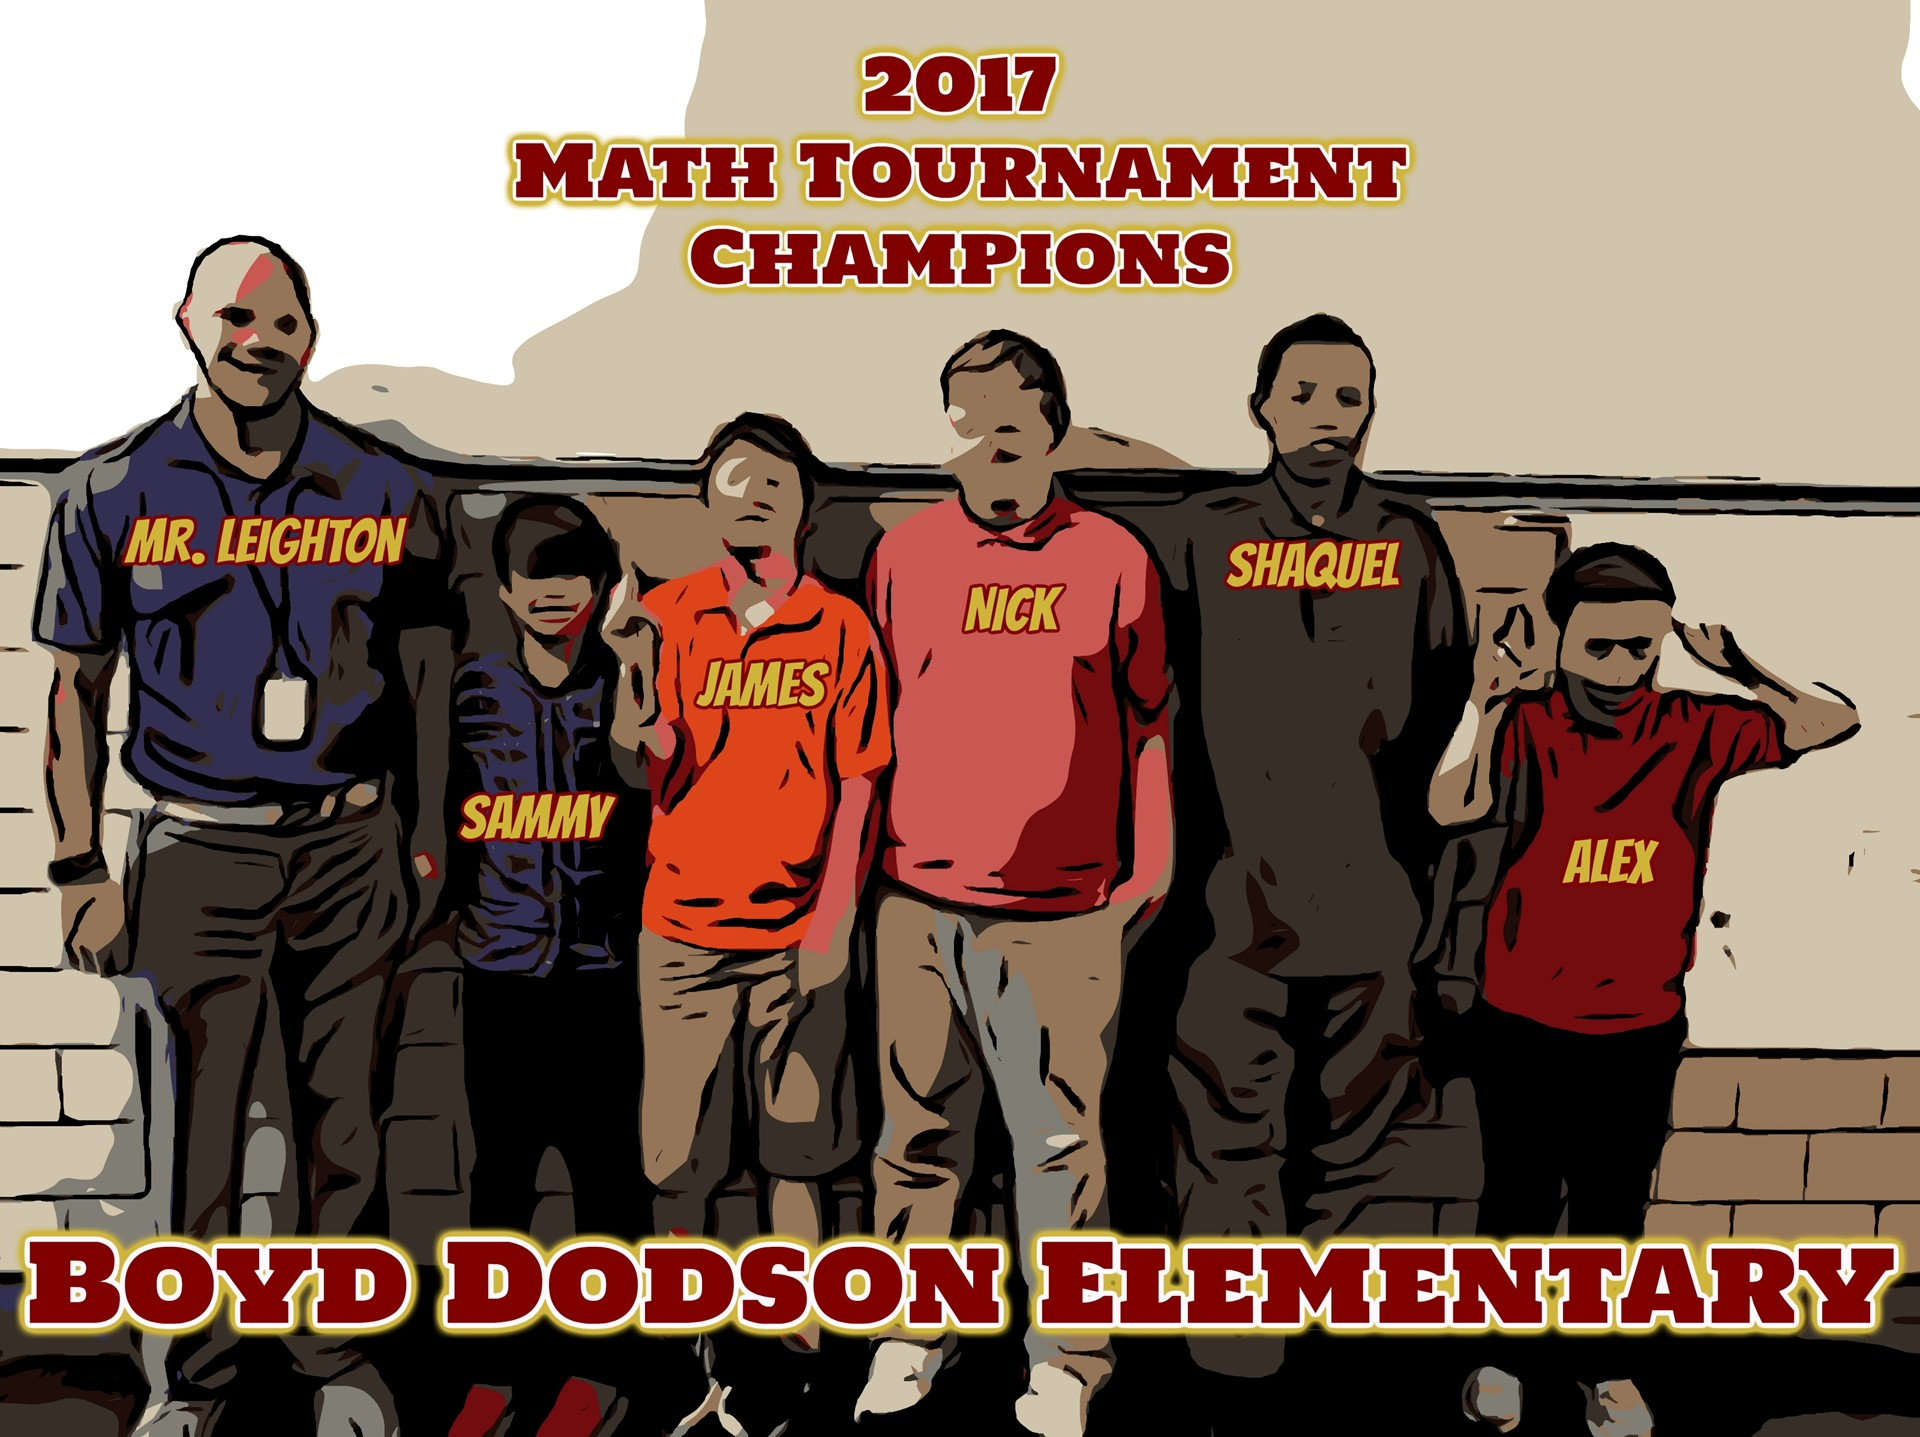 2017 Math Tournament Champions